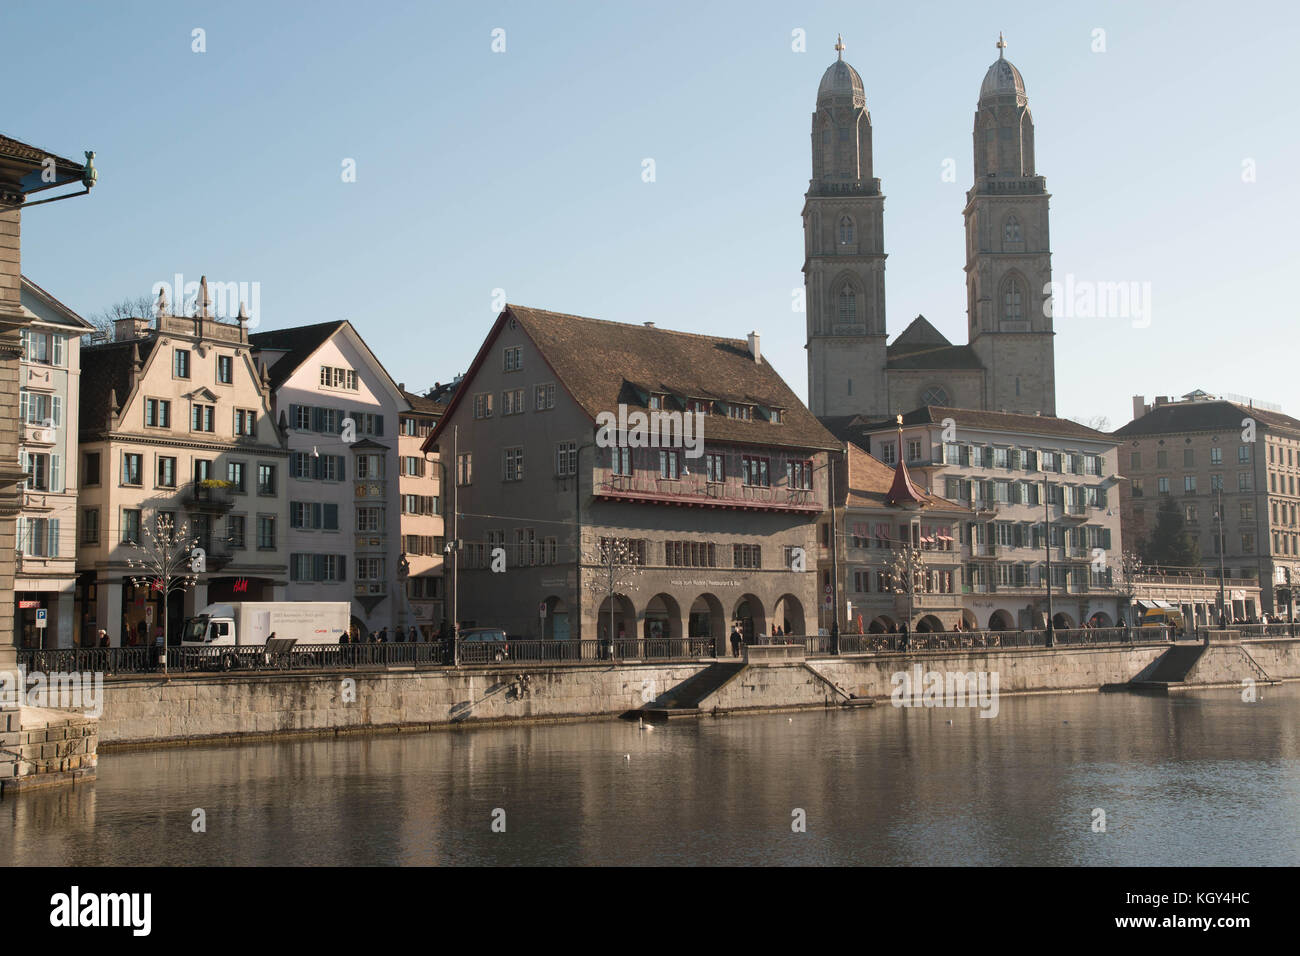 Zurich landscape with river Limmat and munster cathedral - Stock Image